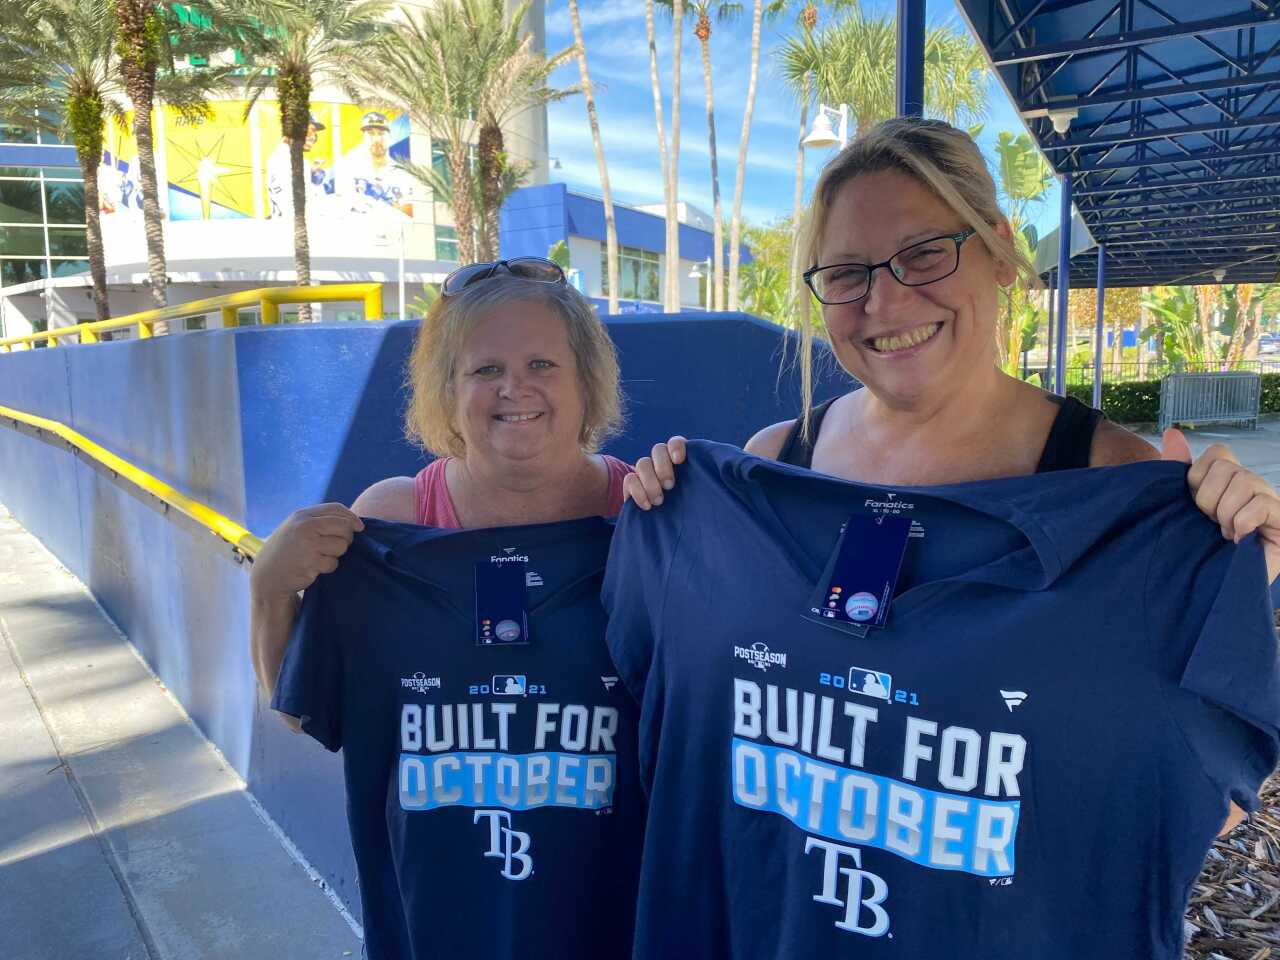 Fans buy gear ahead of the 2021 Tampa Bay Rays Playoff run